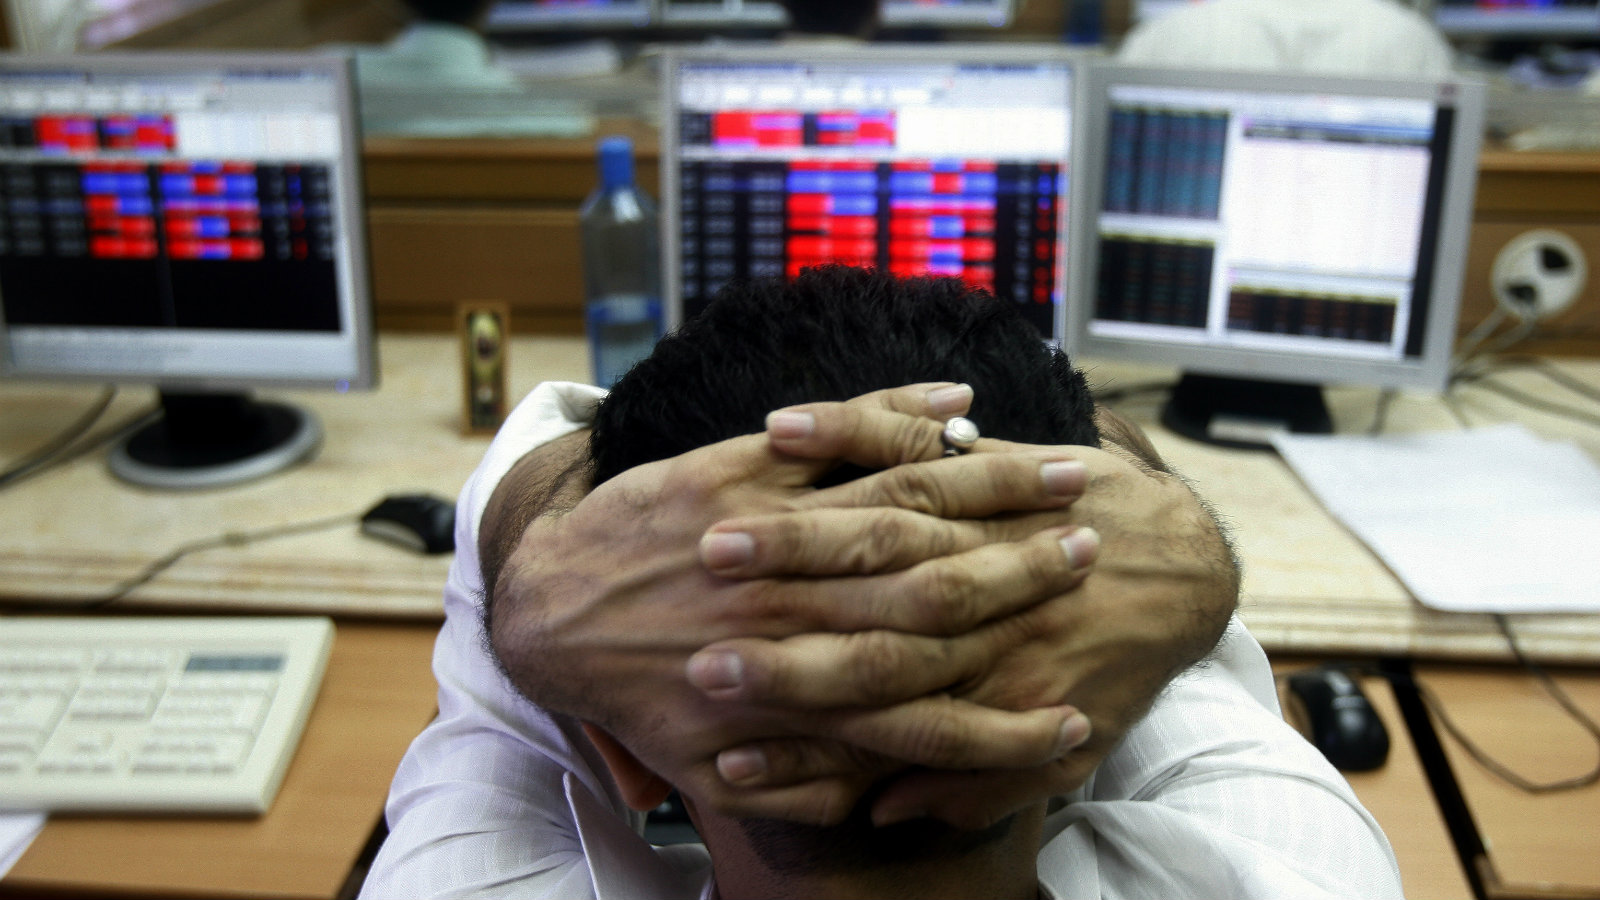 A broker reacts while trading at a stock brokerage firm in Mumbai October 8, 2008.